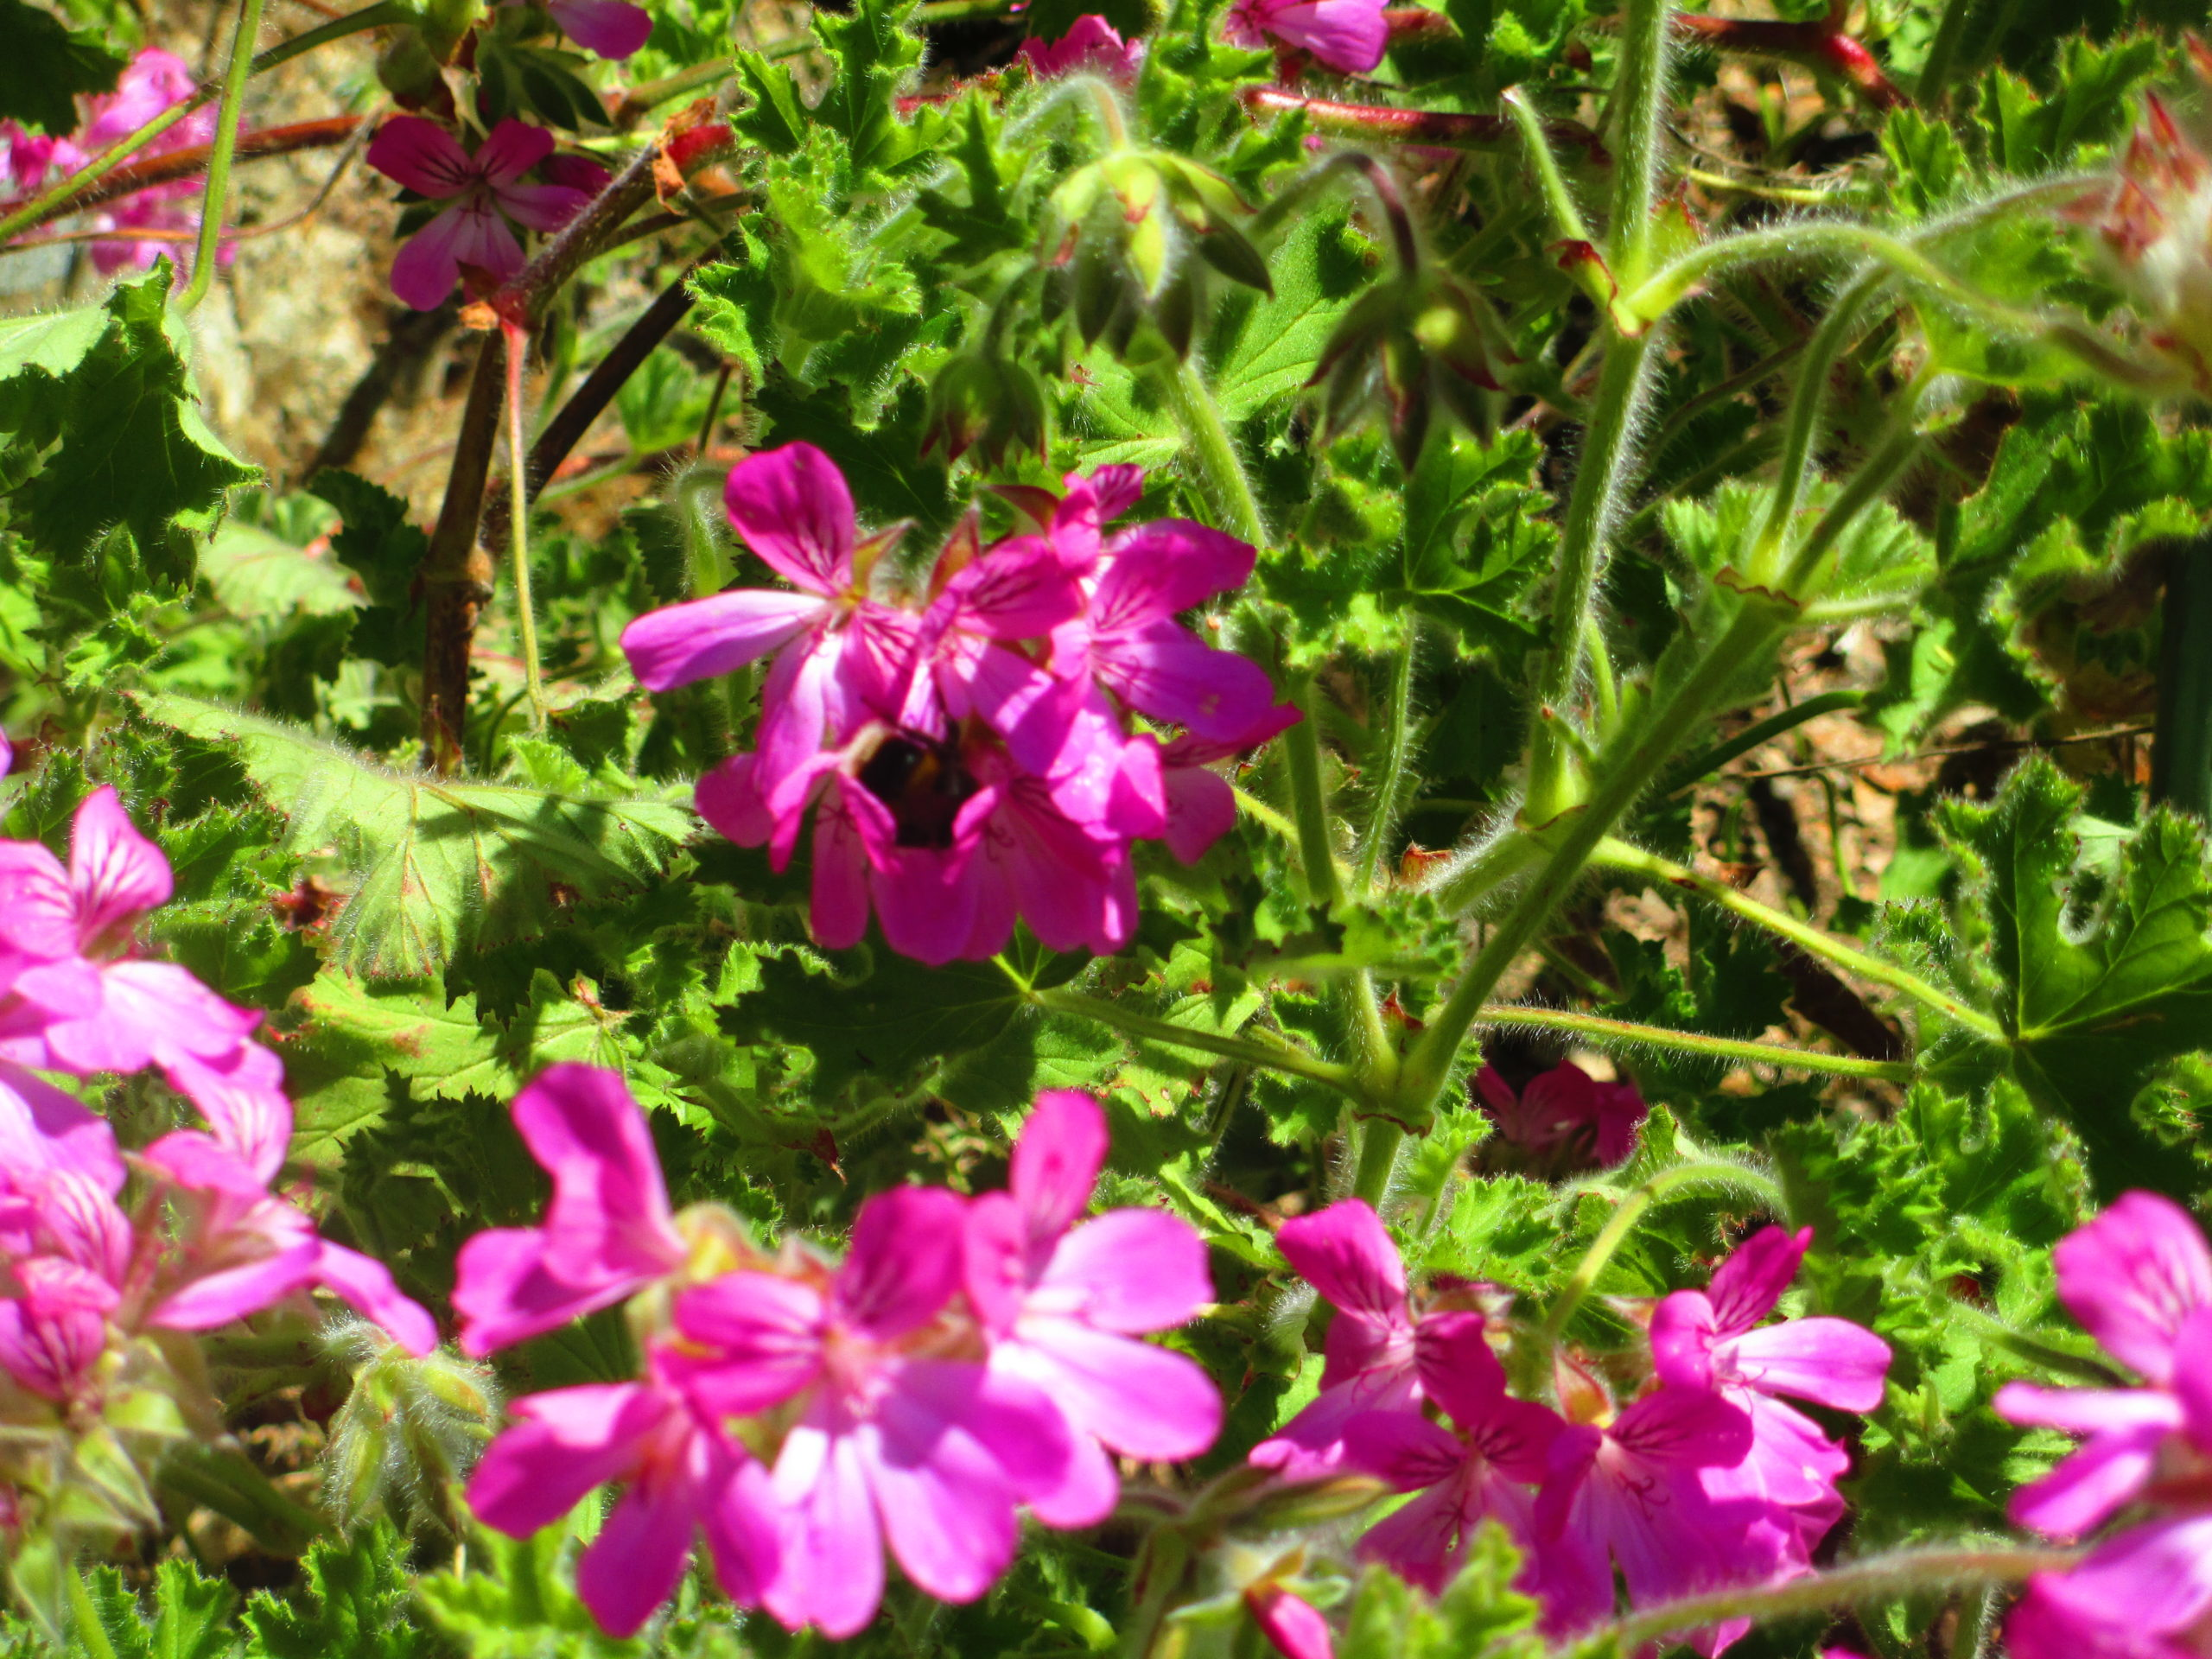 A gorgeous Geranium in my garden with a cute bumble bee enjoying it's sweet nectar